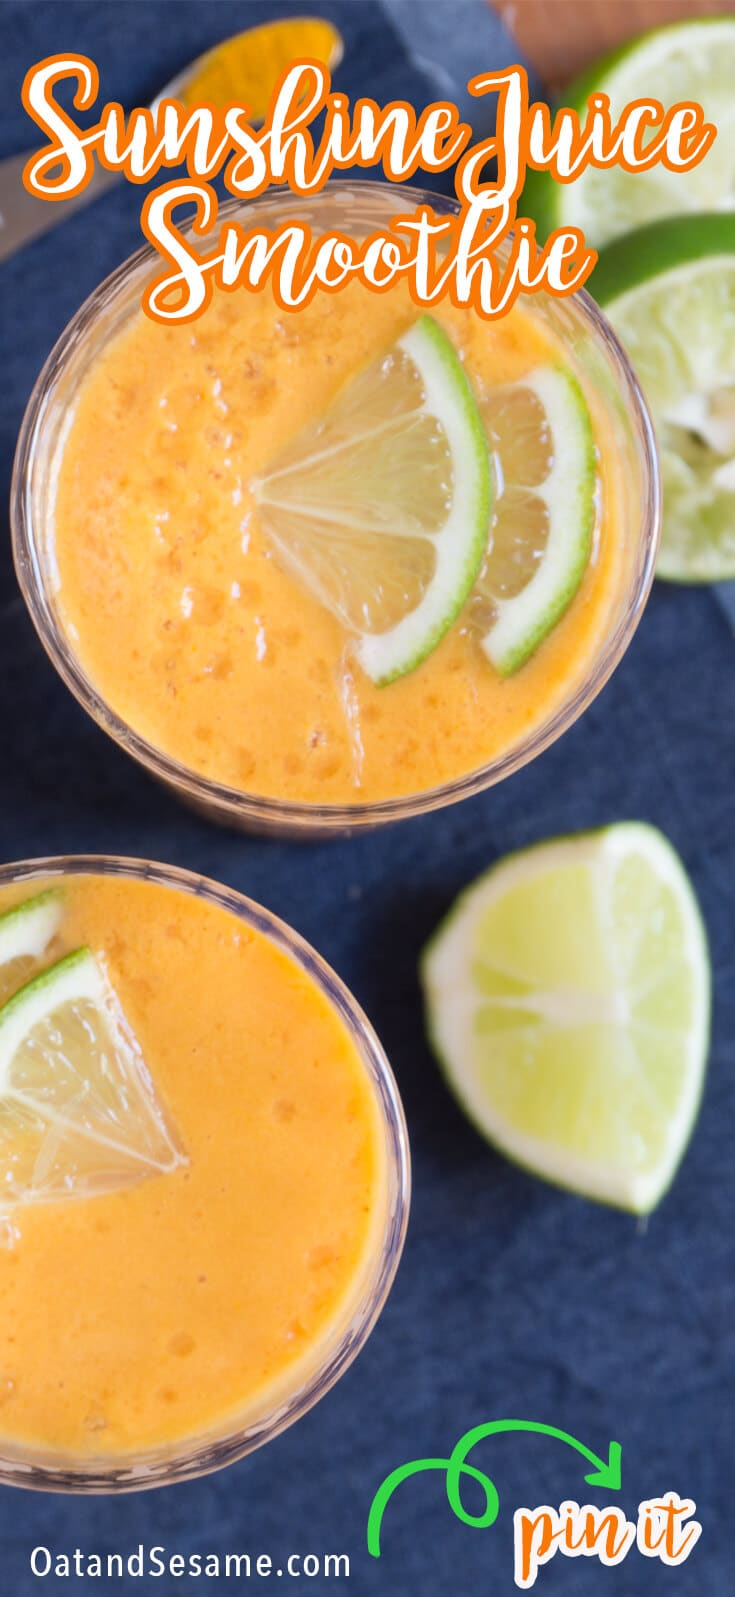 When you need a pick-me-up, this Sunshine Juice Smoothie is the right call. It's named sunshine because it's bright, tangy and it makes you feel like your drinking sunshine! If you're a fan of limeade, this juice smoothie will delight you with a blend of fresh ginger syrup, lime juice, carrot juice, frozen bananas and a dash of turmeric.| #SMOOTHIES | #JUICE | #Recipes at OatandSesame.com